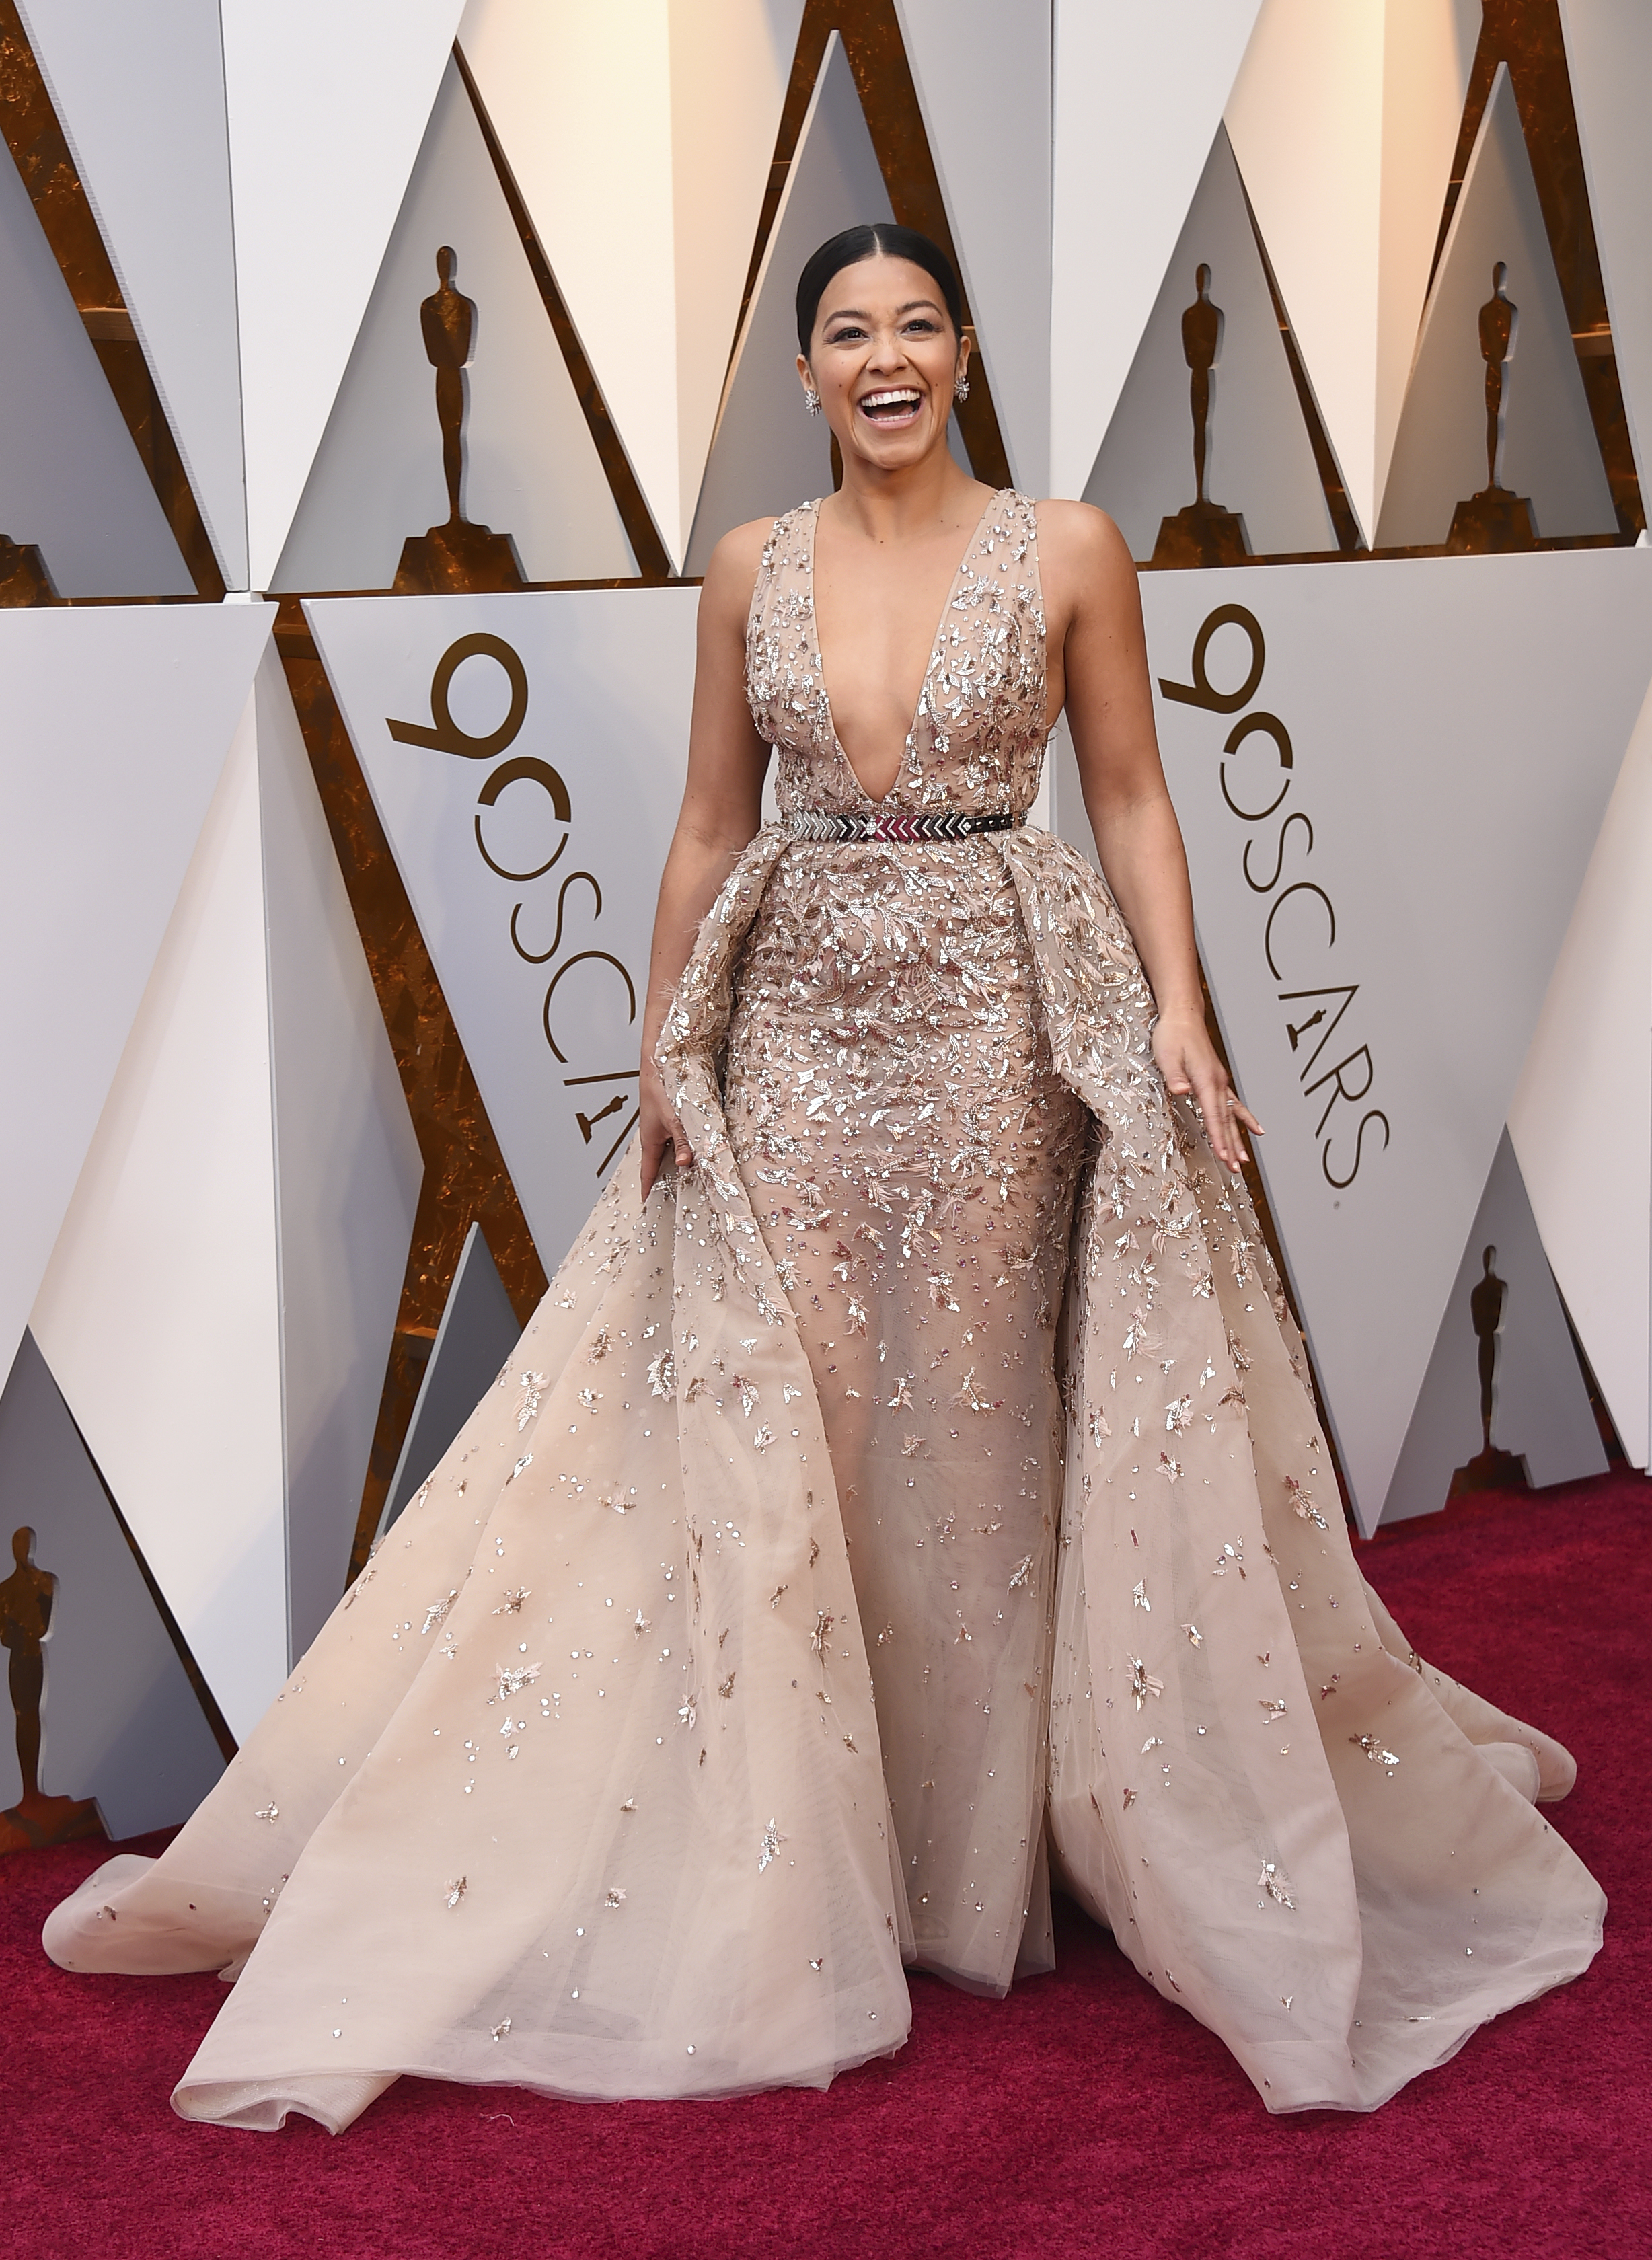 <div class='meta'><div class='origin-logo' data-origin='none'></div><span class='caption-text' data-credit='Jordan Strauss/Invision/AP'>Gina Rodriguez arrives at the Oscars on Sunday, March 4, 2018, at the Dolby Theatre in Los Angeles.</span></div>